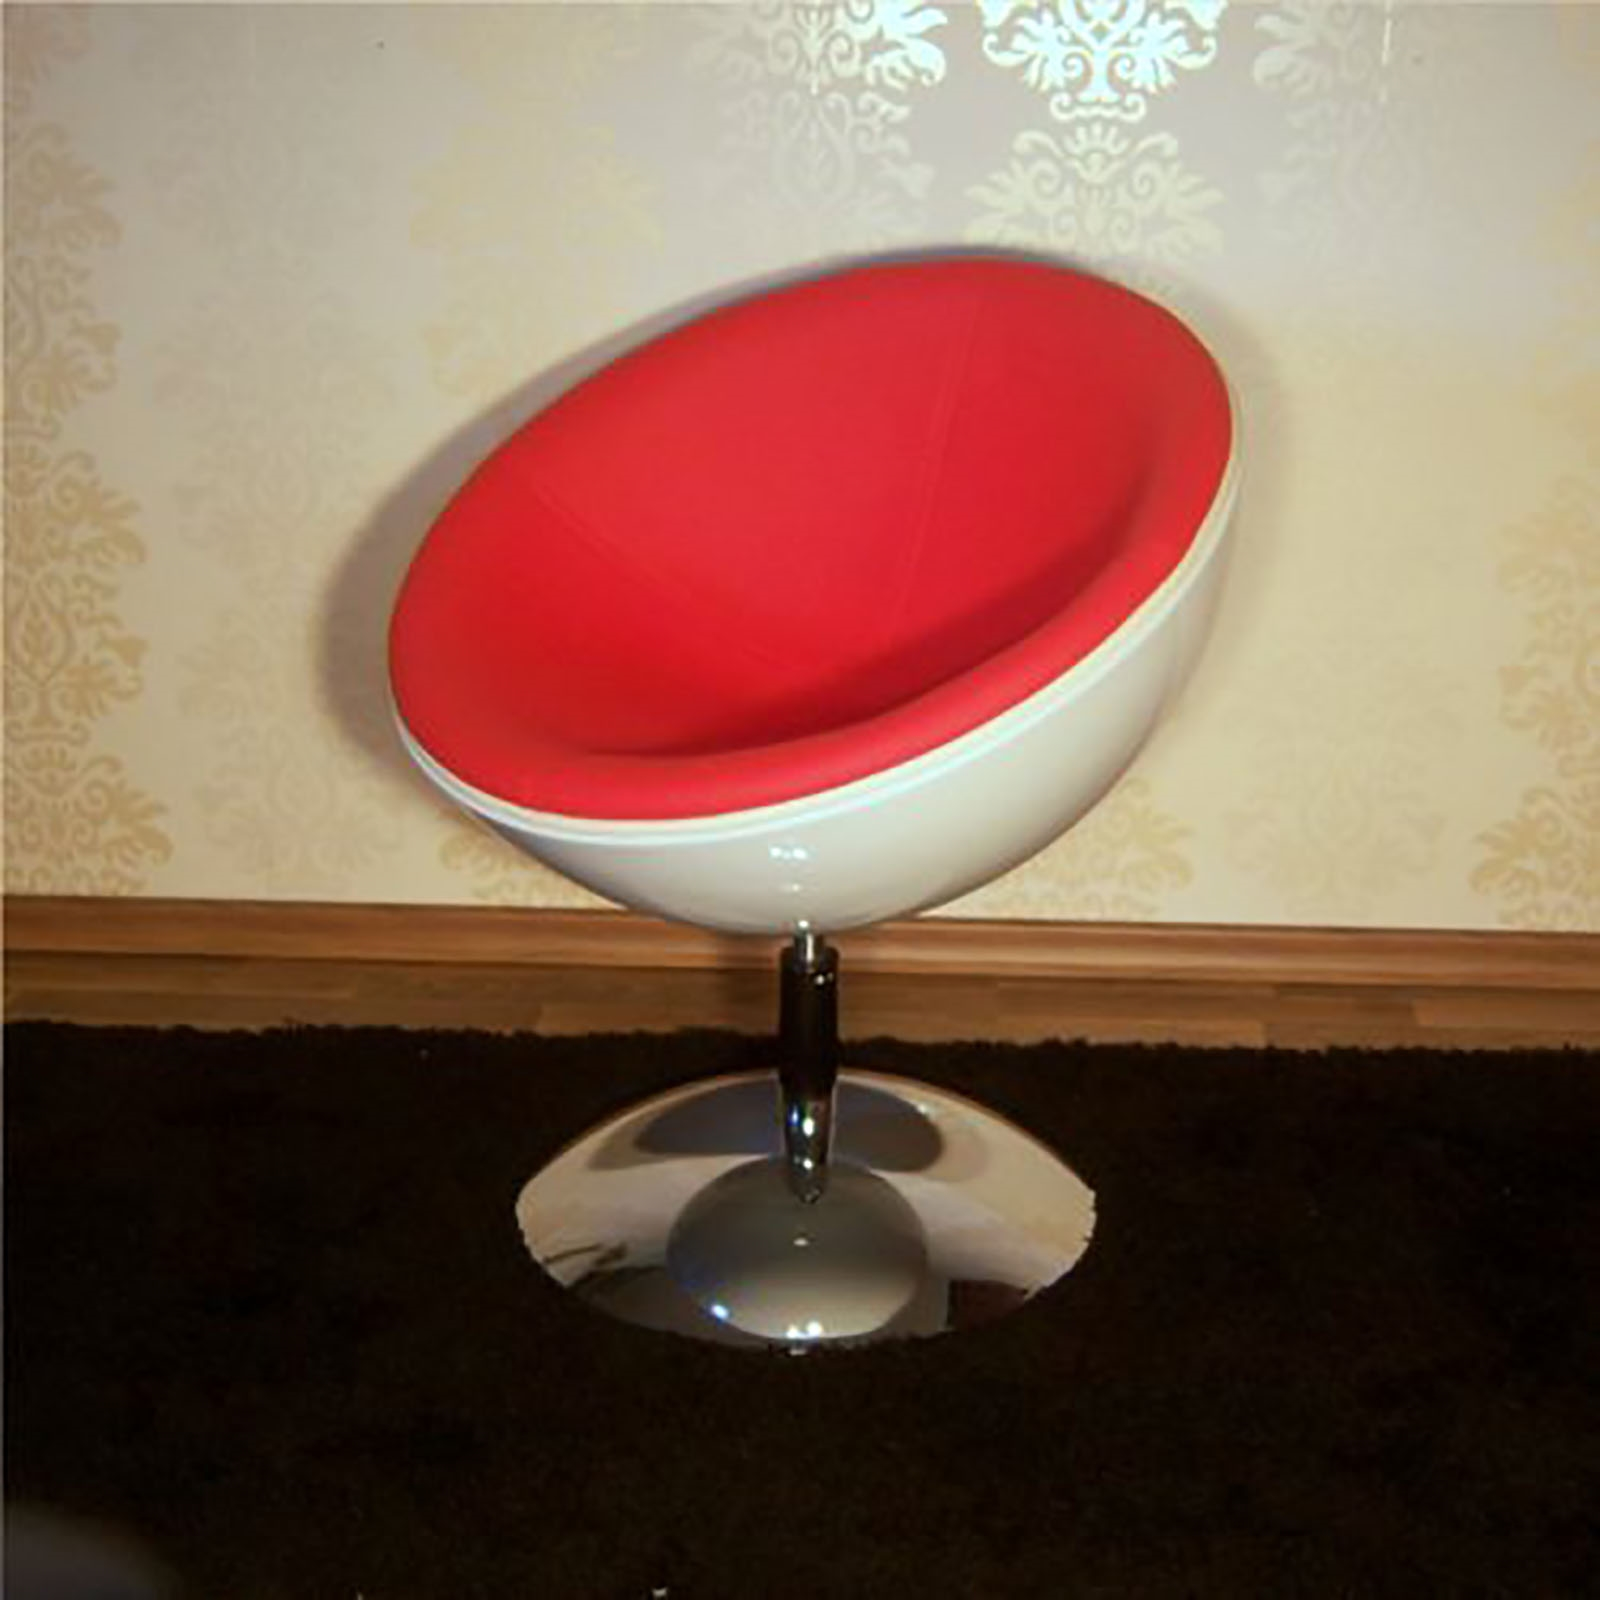 Retro Möbel 70er Retro Schalen Sessel 70er Design Stuhl Lounge Möbel C13